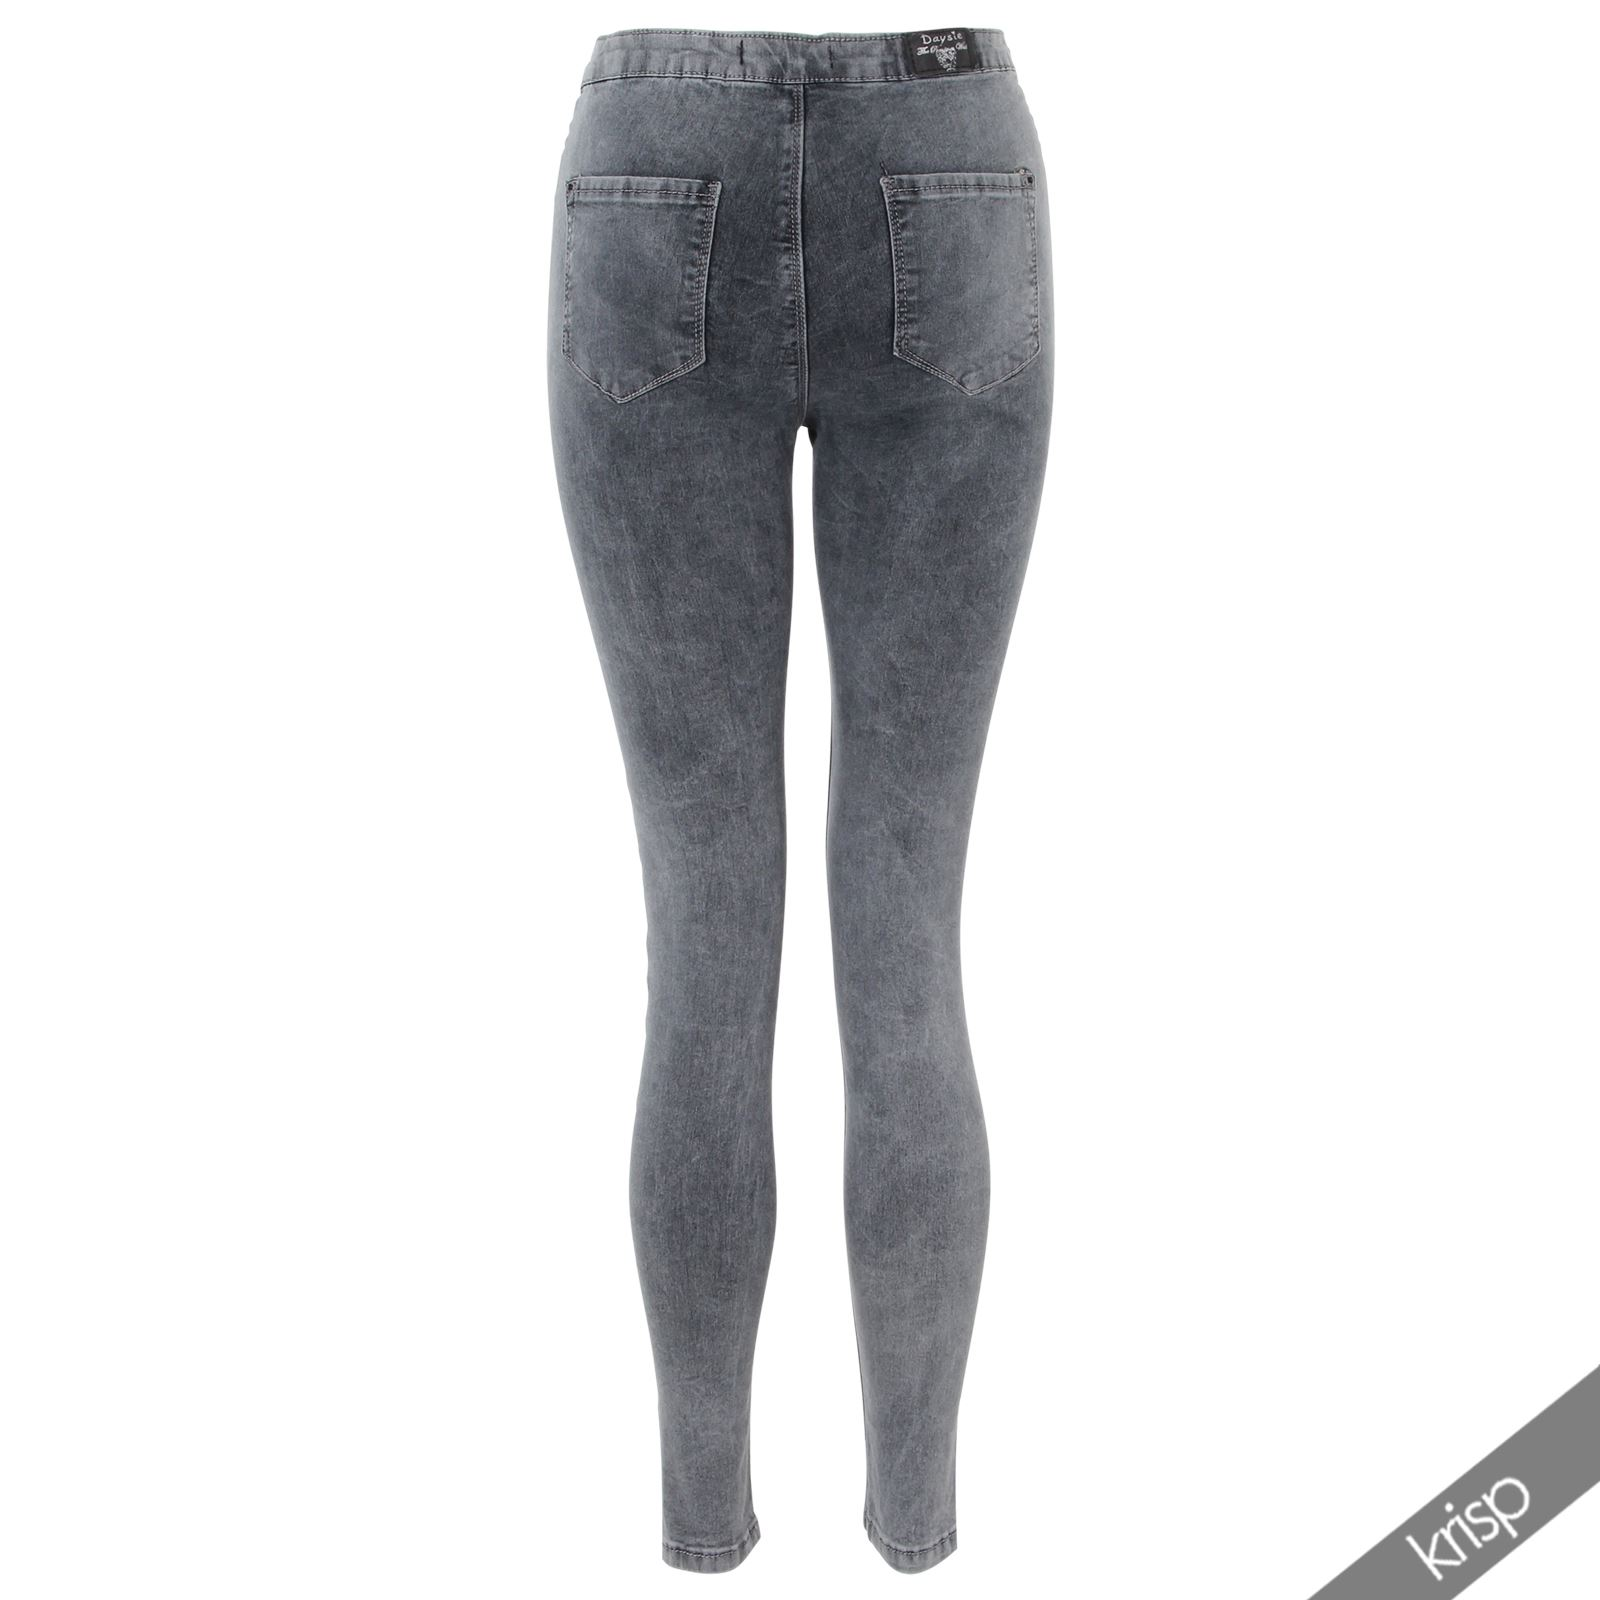 f6df31598fa5fc Slim Fit Hohe Taille Ripped Zerrissene Hosen Leggings Jeggings